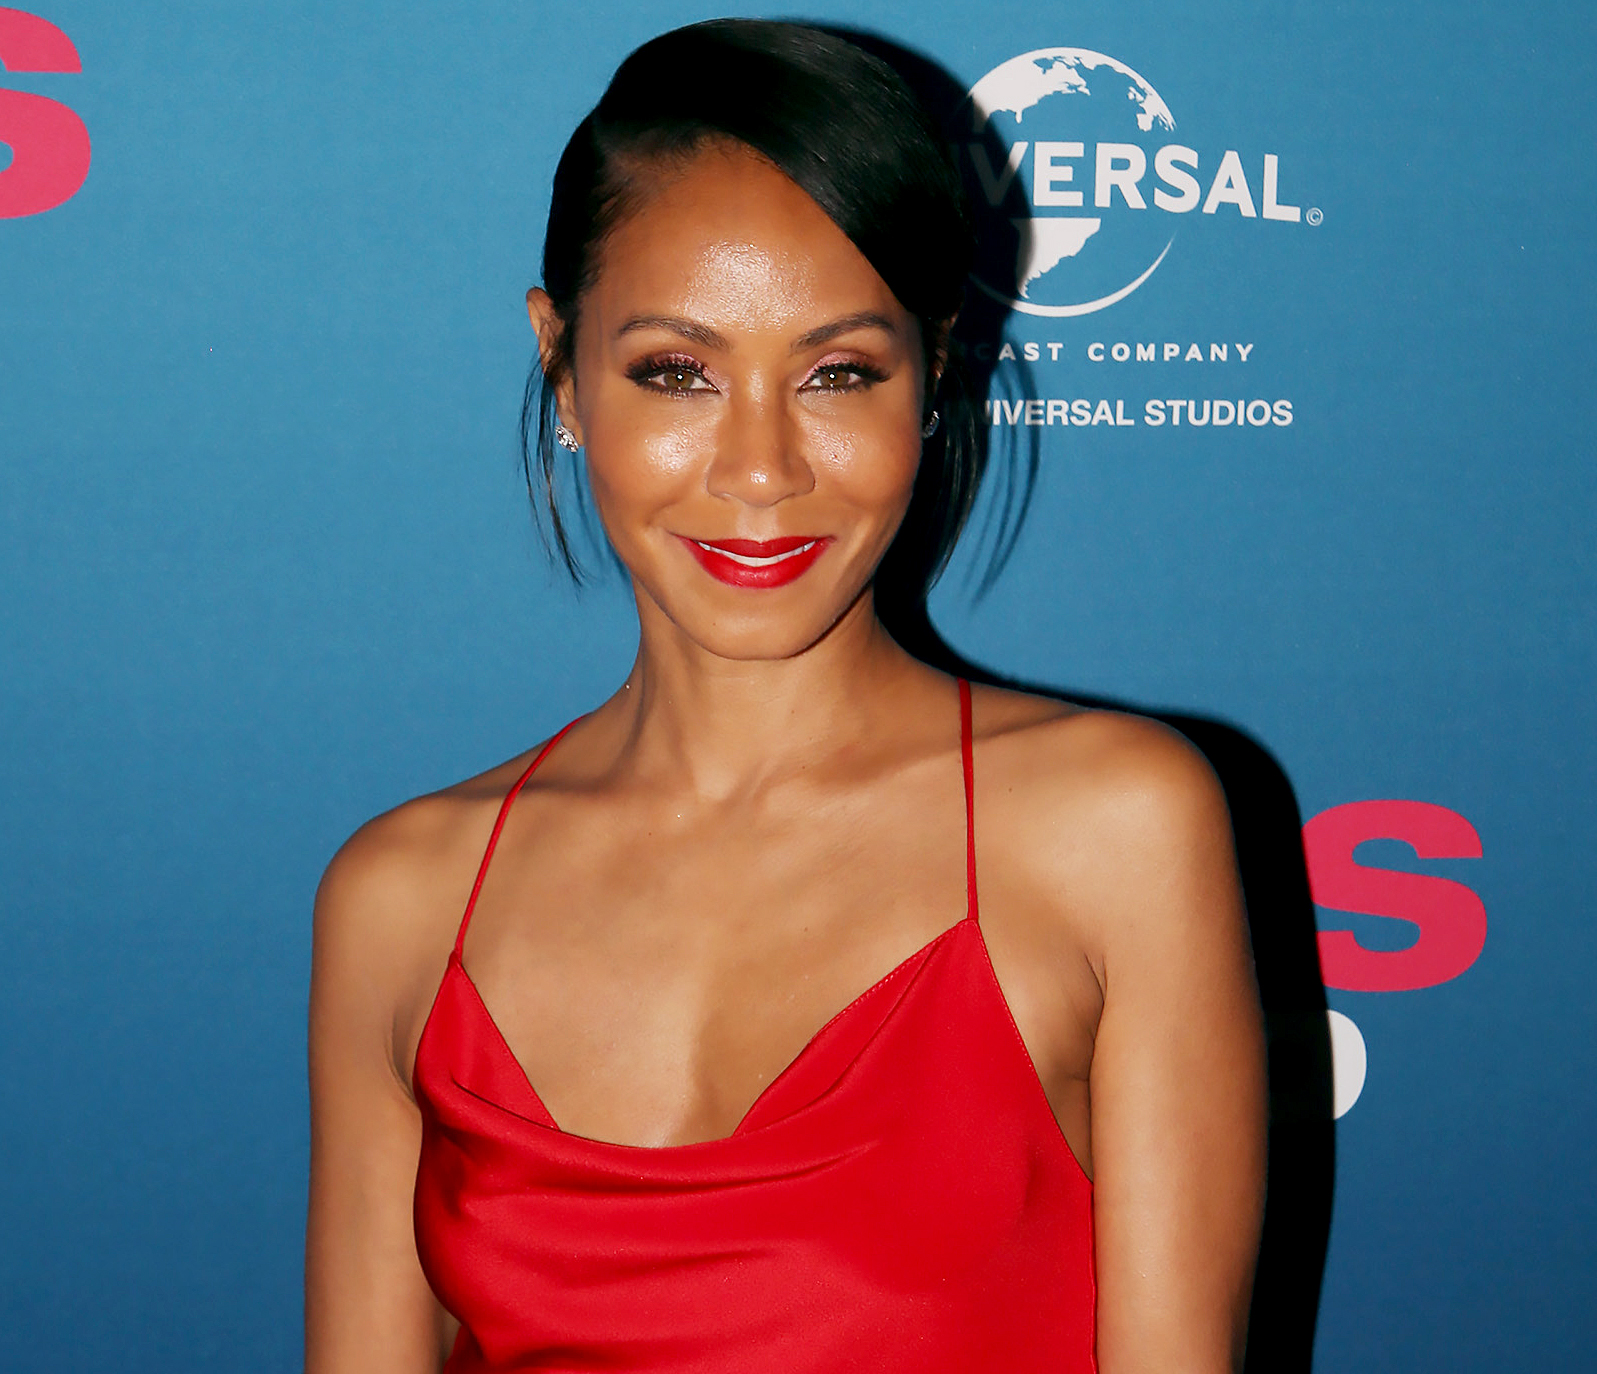 Jada Pinkett Smith Opens Up About Past Sex Addiction